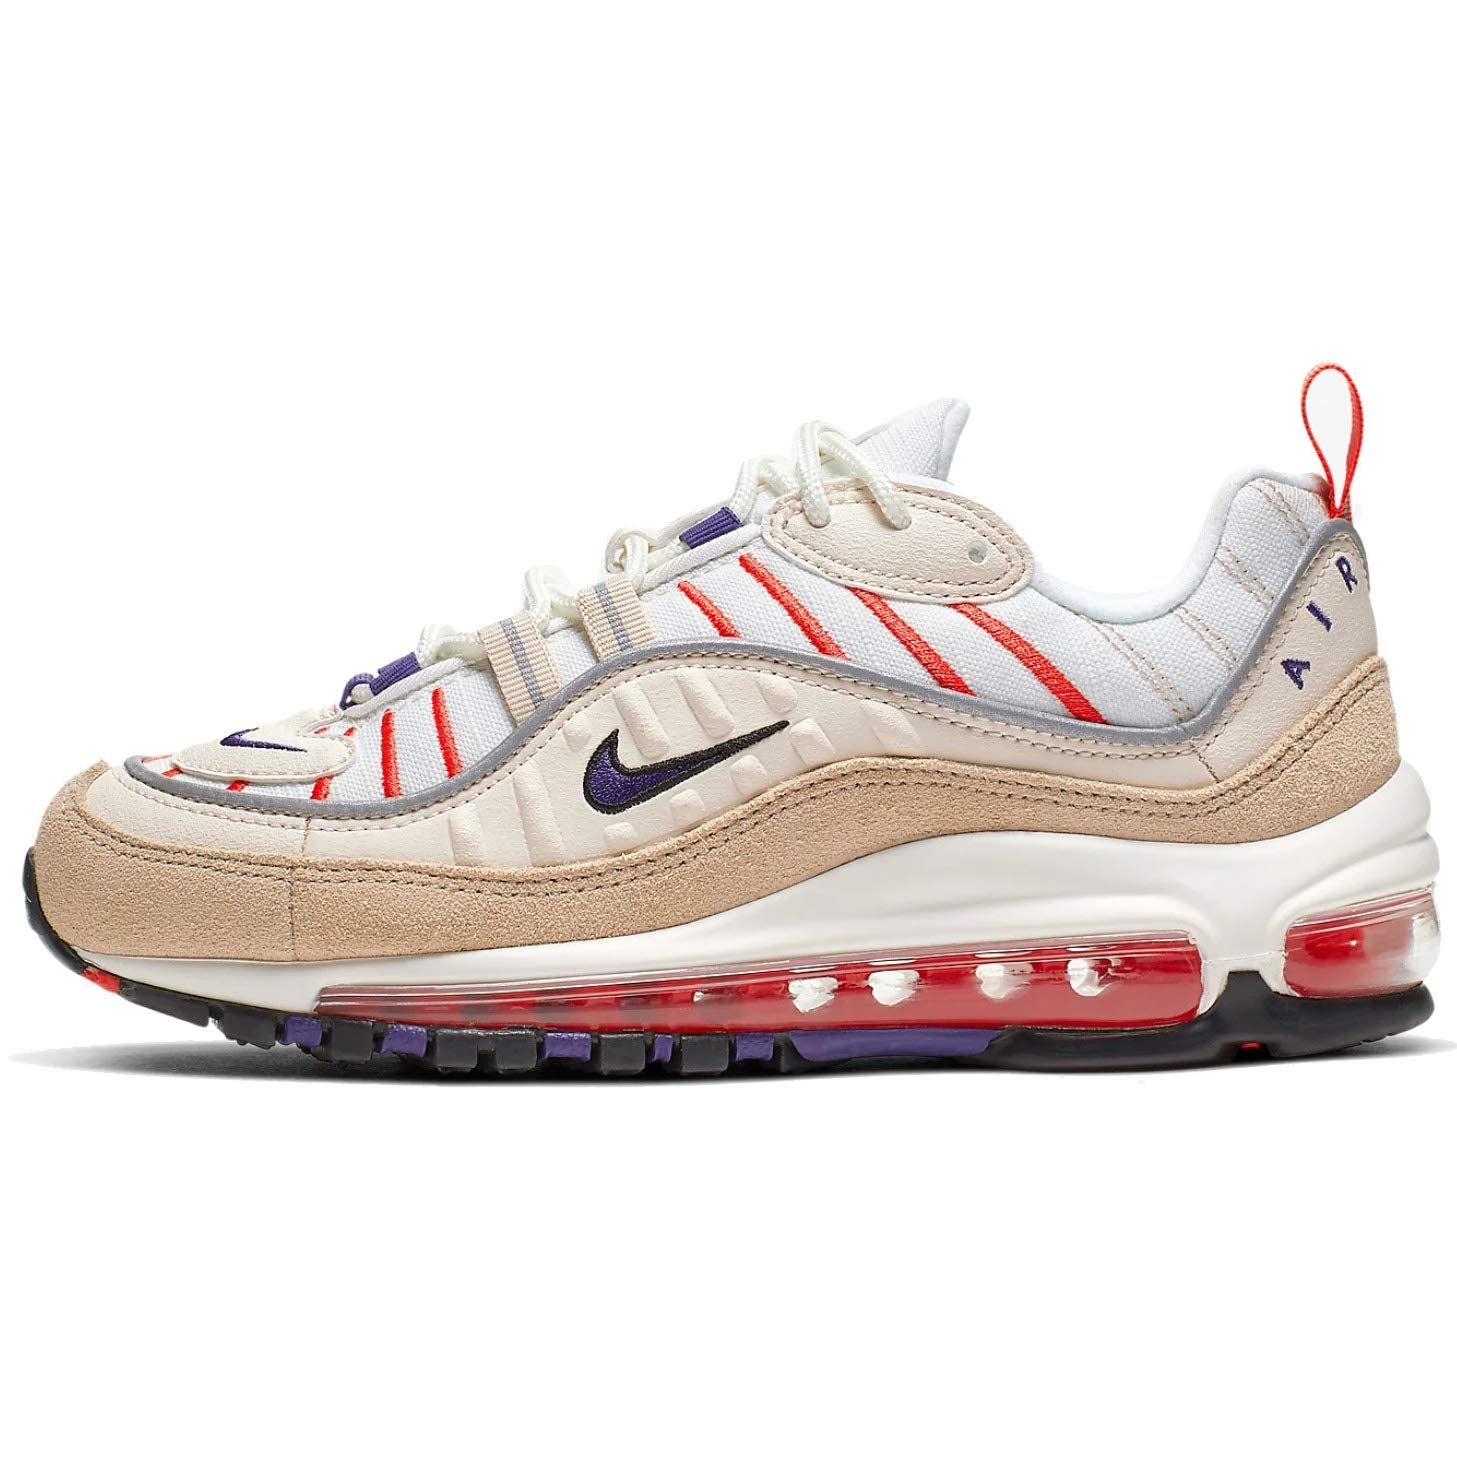 san francisco b095b 06668 Amazon.com | Nike Air Max 98 (gs) Big Kids Bv4872-100 | Running